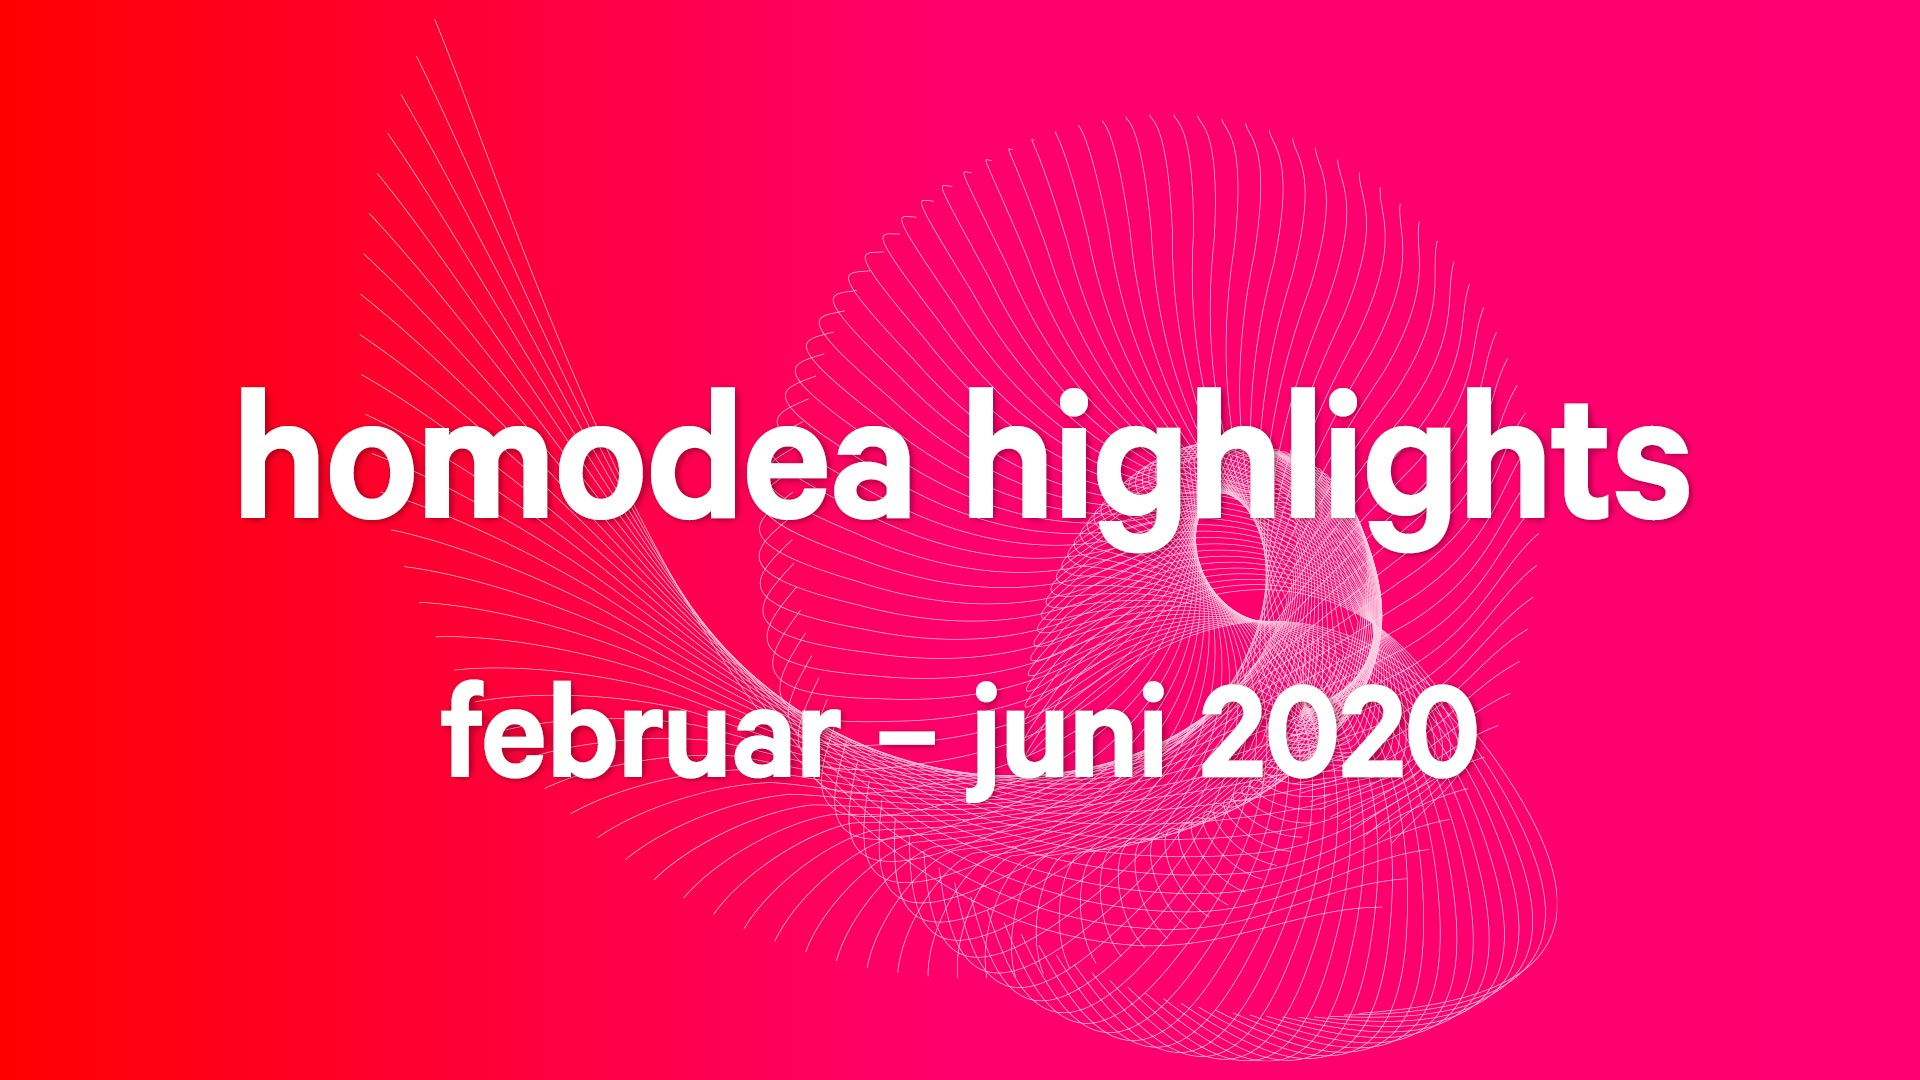 homodea highlights februar – juni 2020